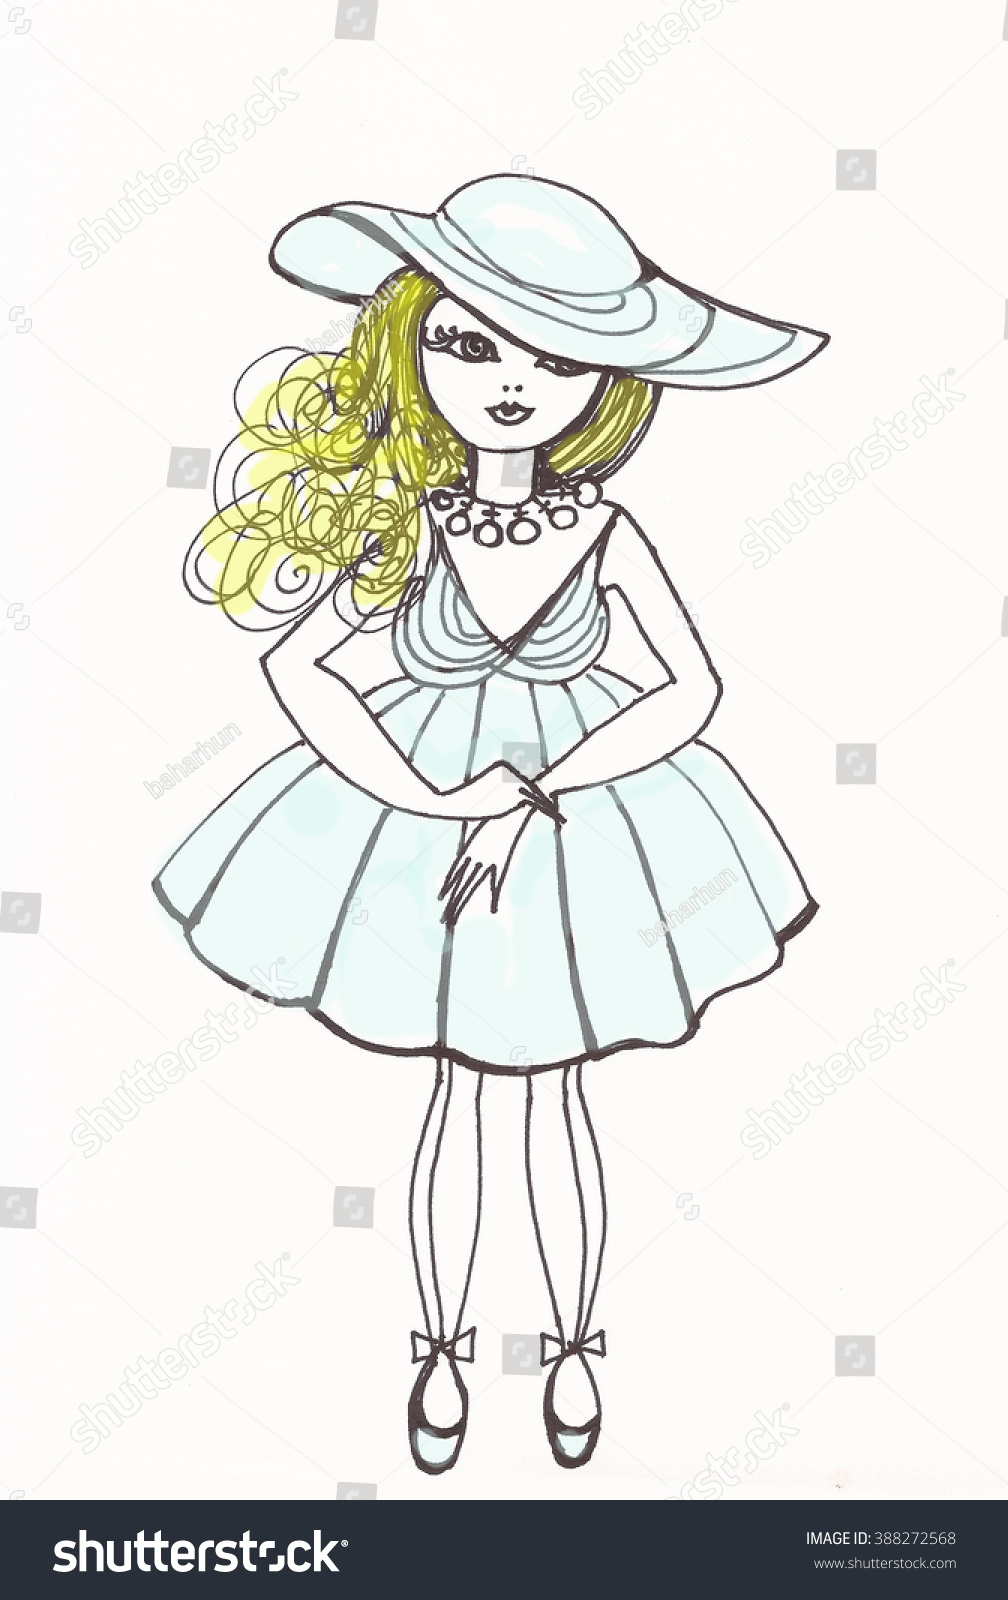 Fashion girl with pencil drawing blonde girl with blue dress and hat baby doll design